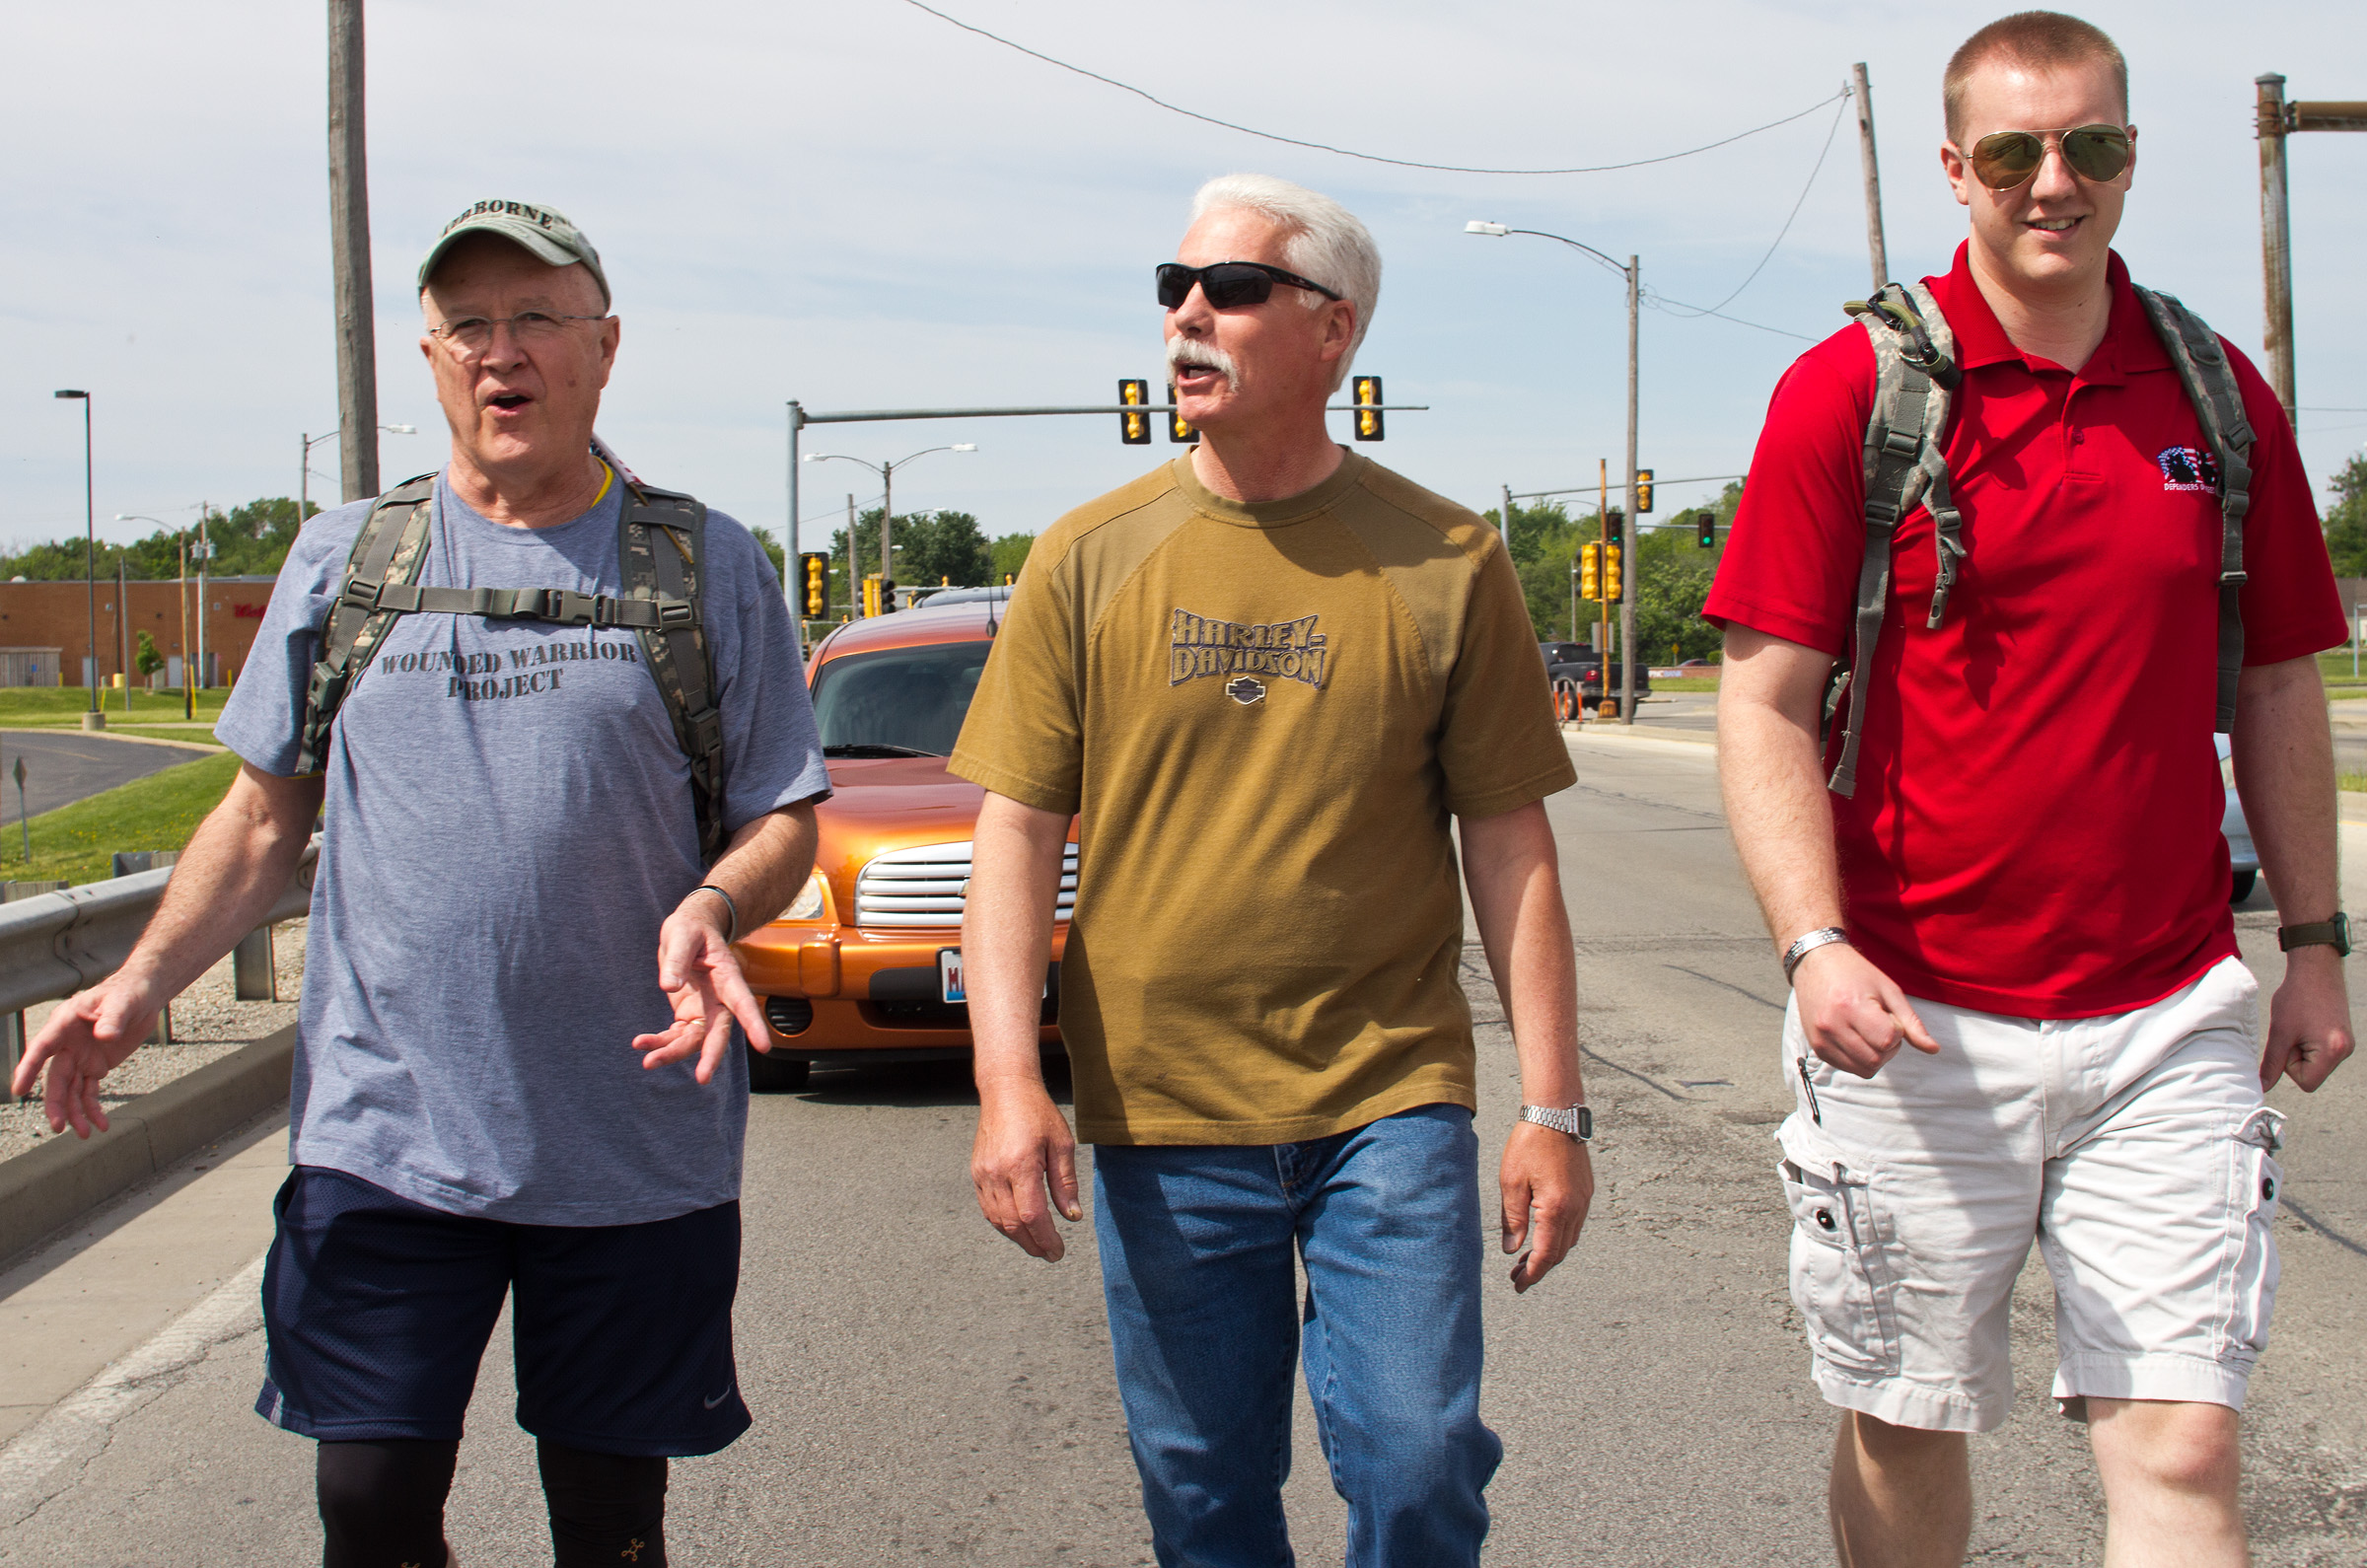 From left to right, Ron Stephens, Scott Hartman and Cody Floyd, all veterans, converse as they begin their journey towards Elwood, Ill., on May 24 in Decatur, Ill.